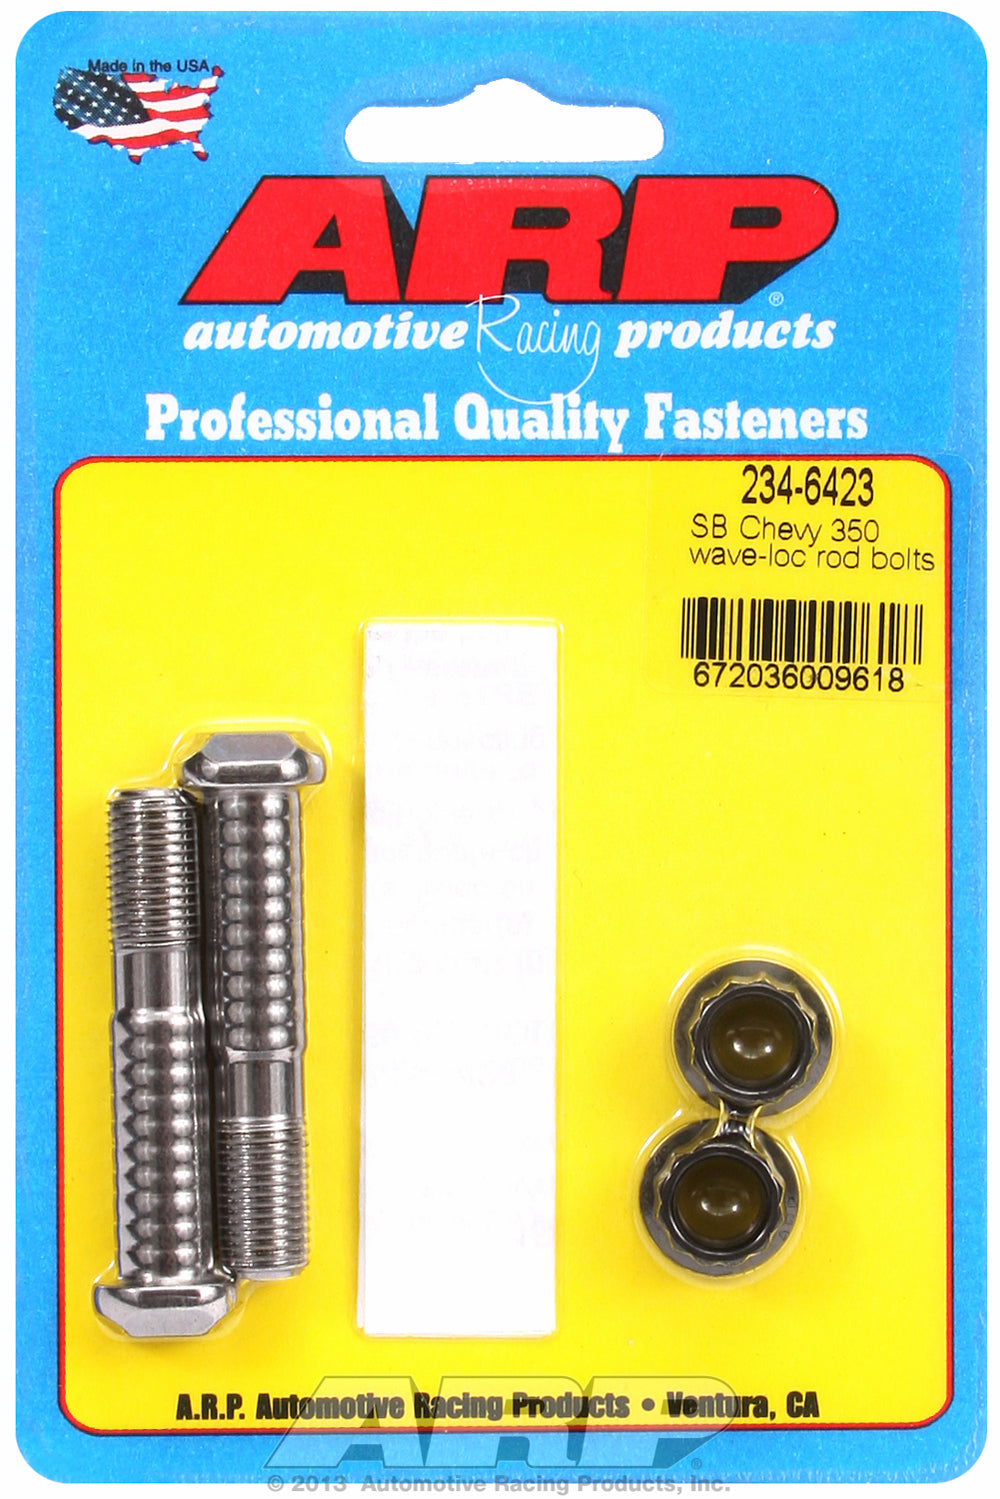 Pro Wave ARP2000 2-pc Rod Bolt Kit for Chevrolet 305-307-327-350 cid (large journal) 3/8˝